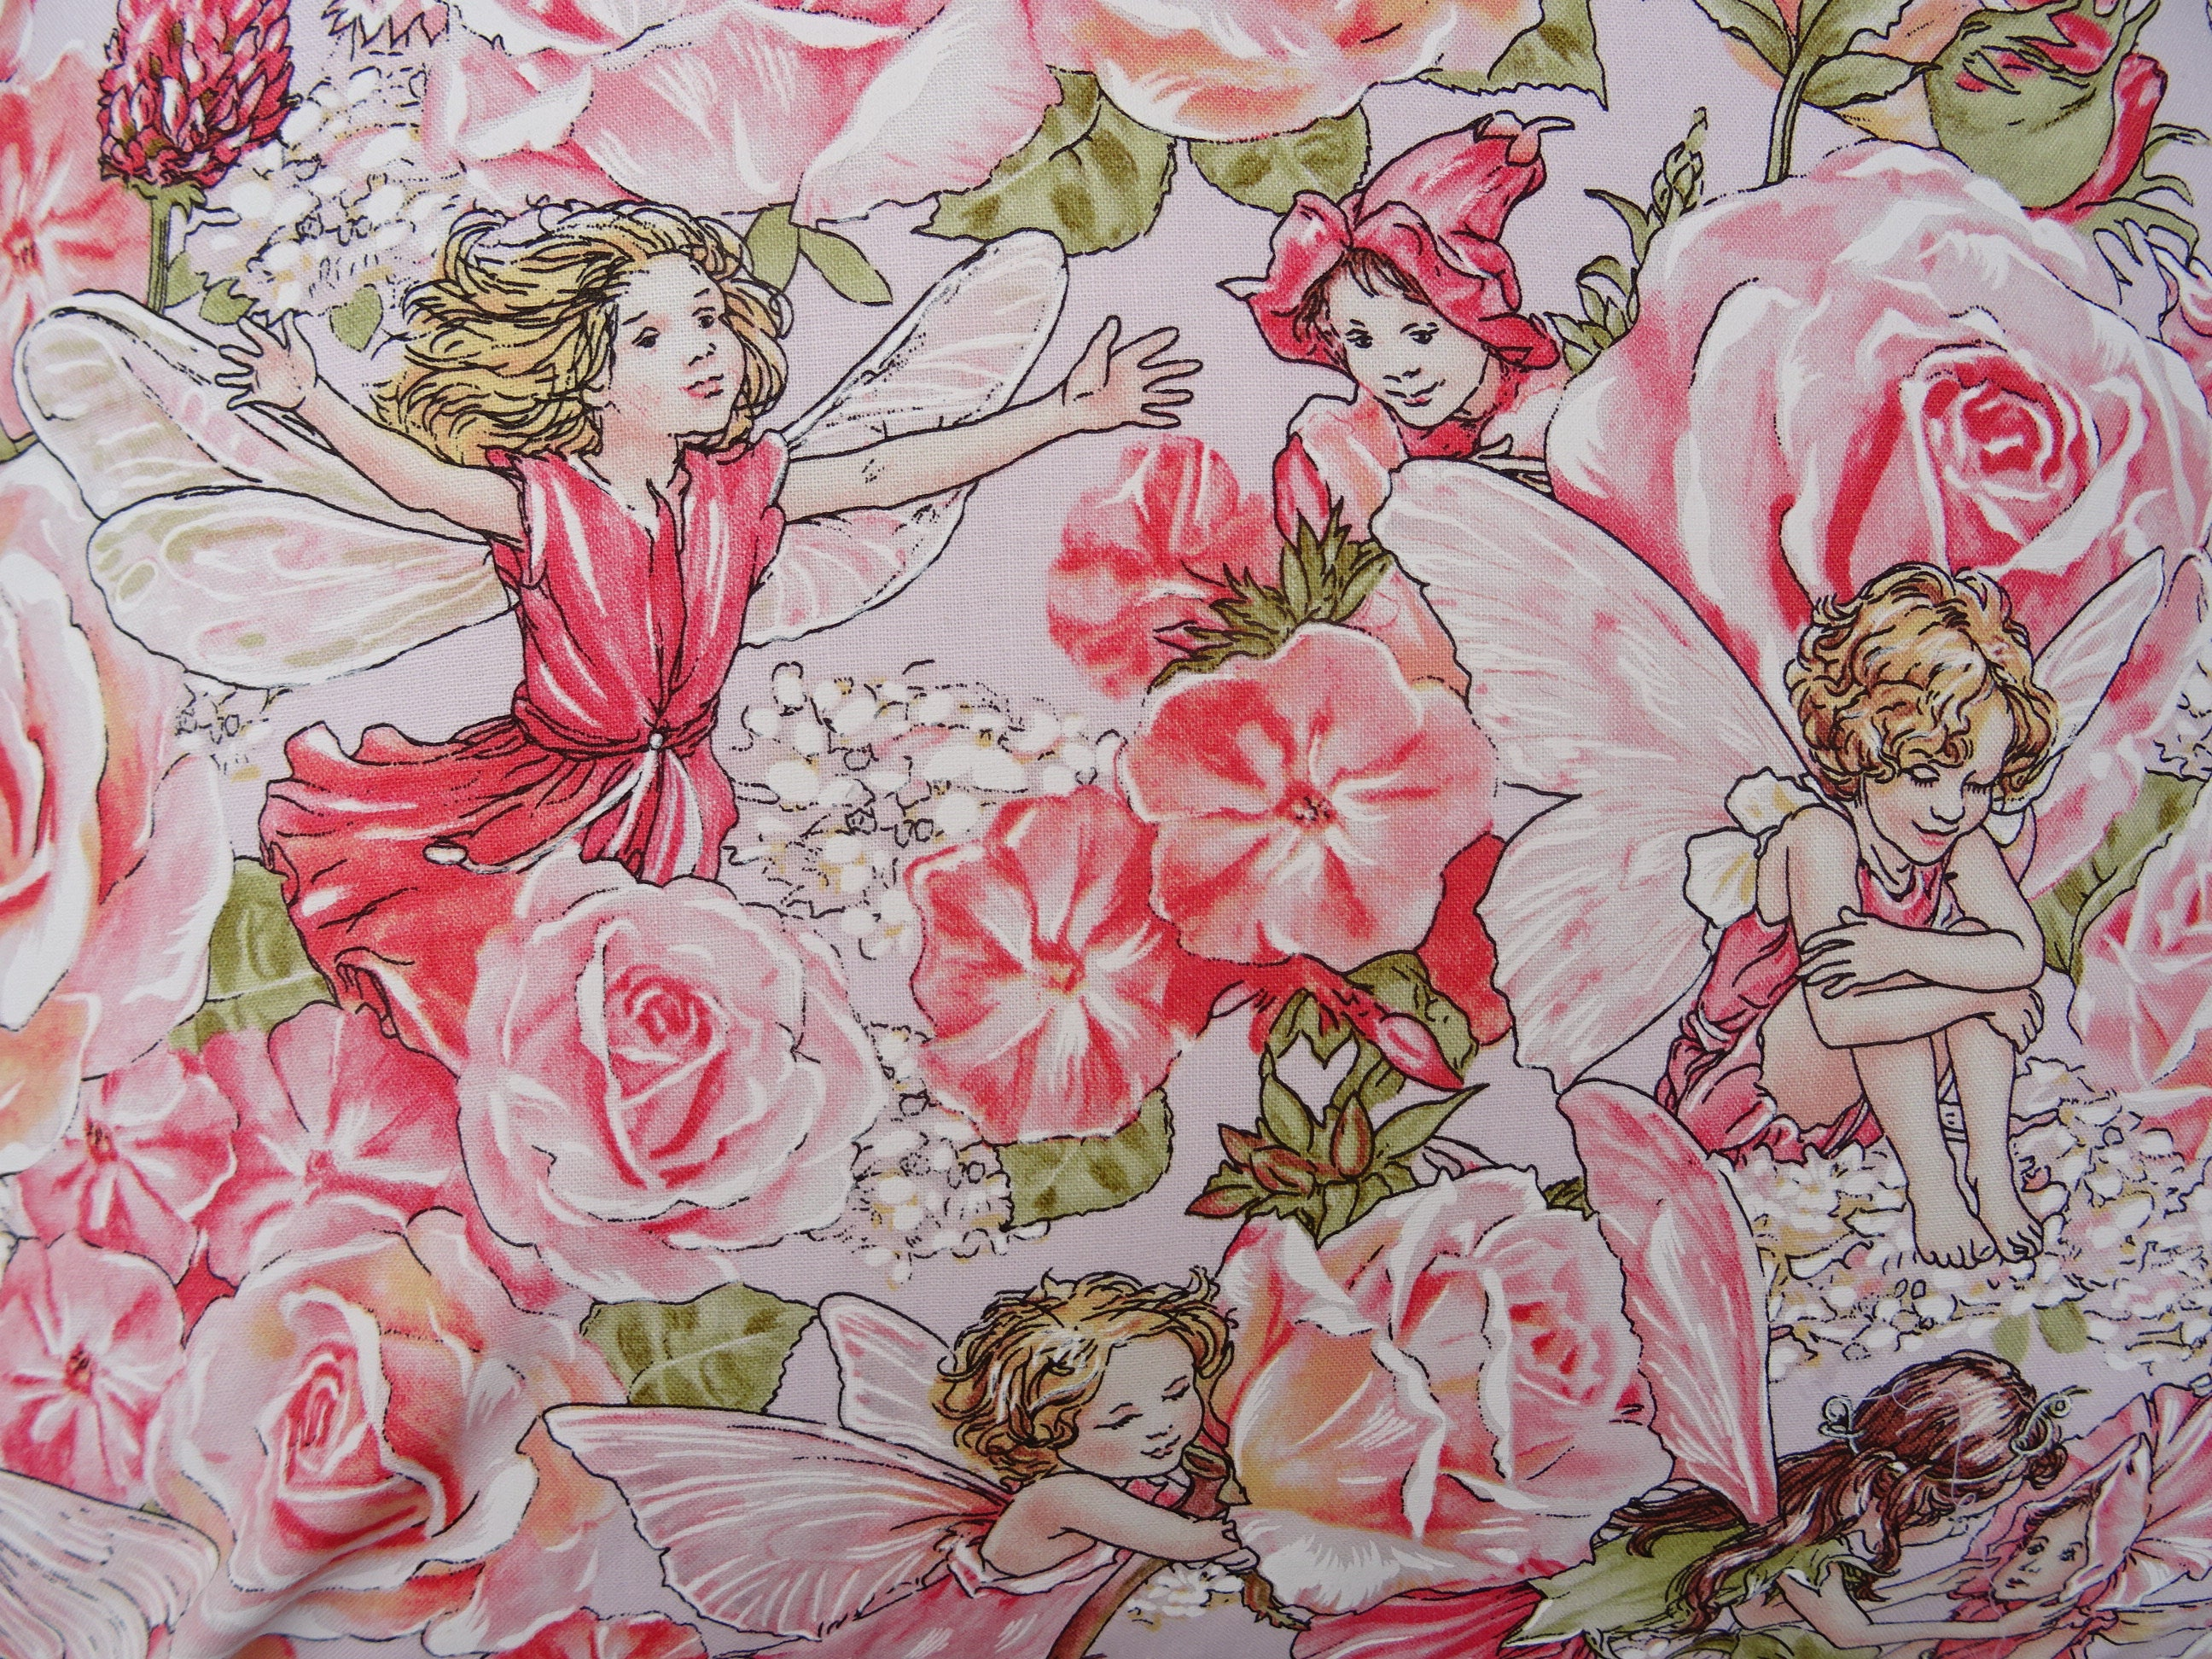 Flower fairies cushion cover 18 inch 46 cm with or without insert flower fairies cushion cover 18 inch 46 cm with or without insert pink fairy cushion mightylinksfo